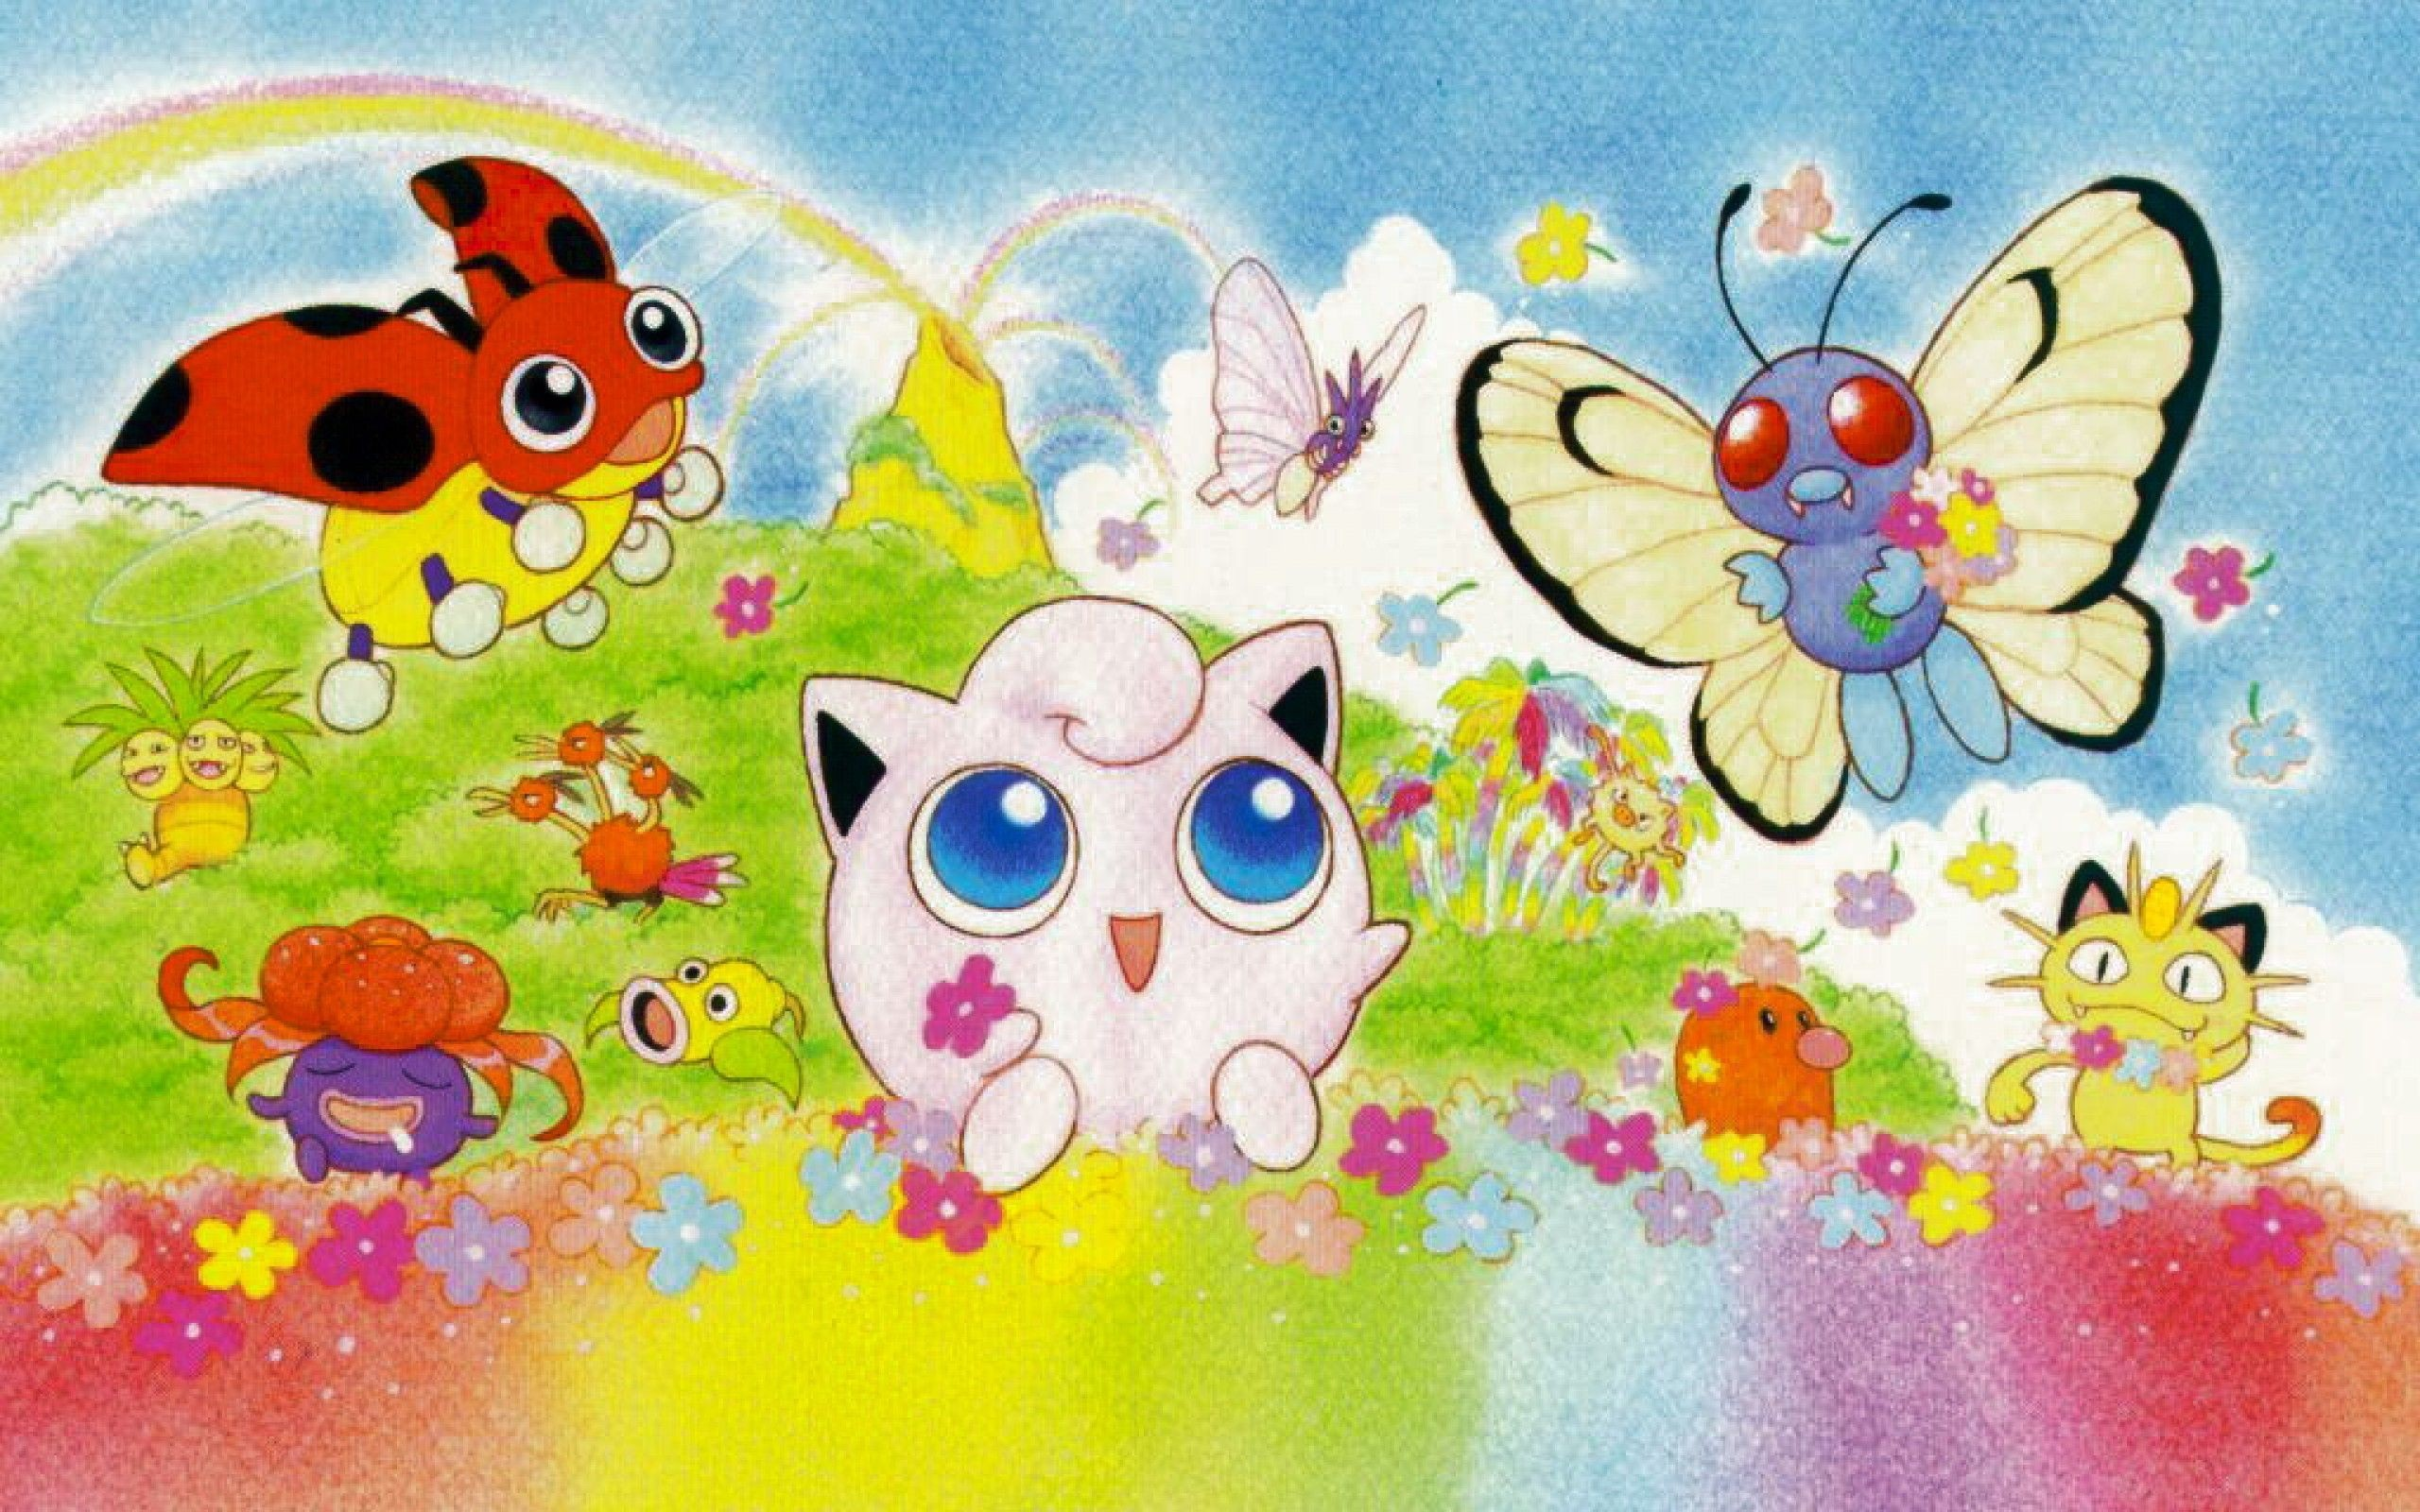 Cute Pokemon Wallpaper 1920x1080 1080p